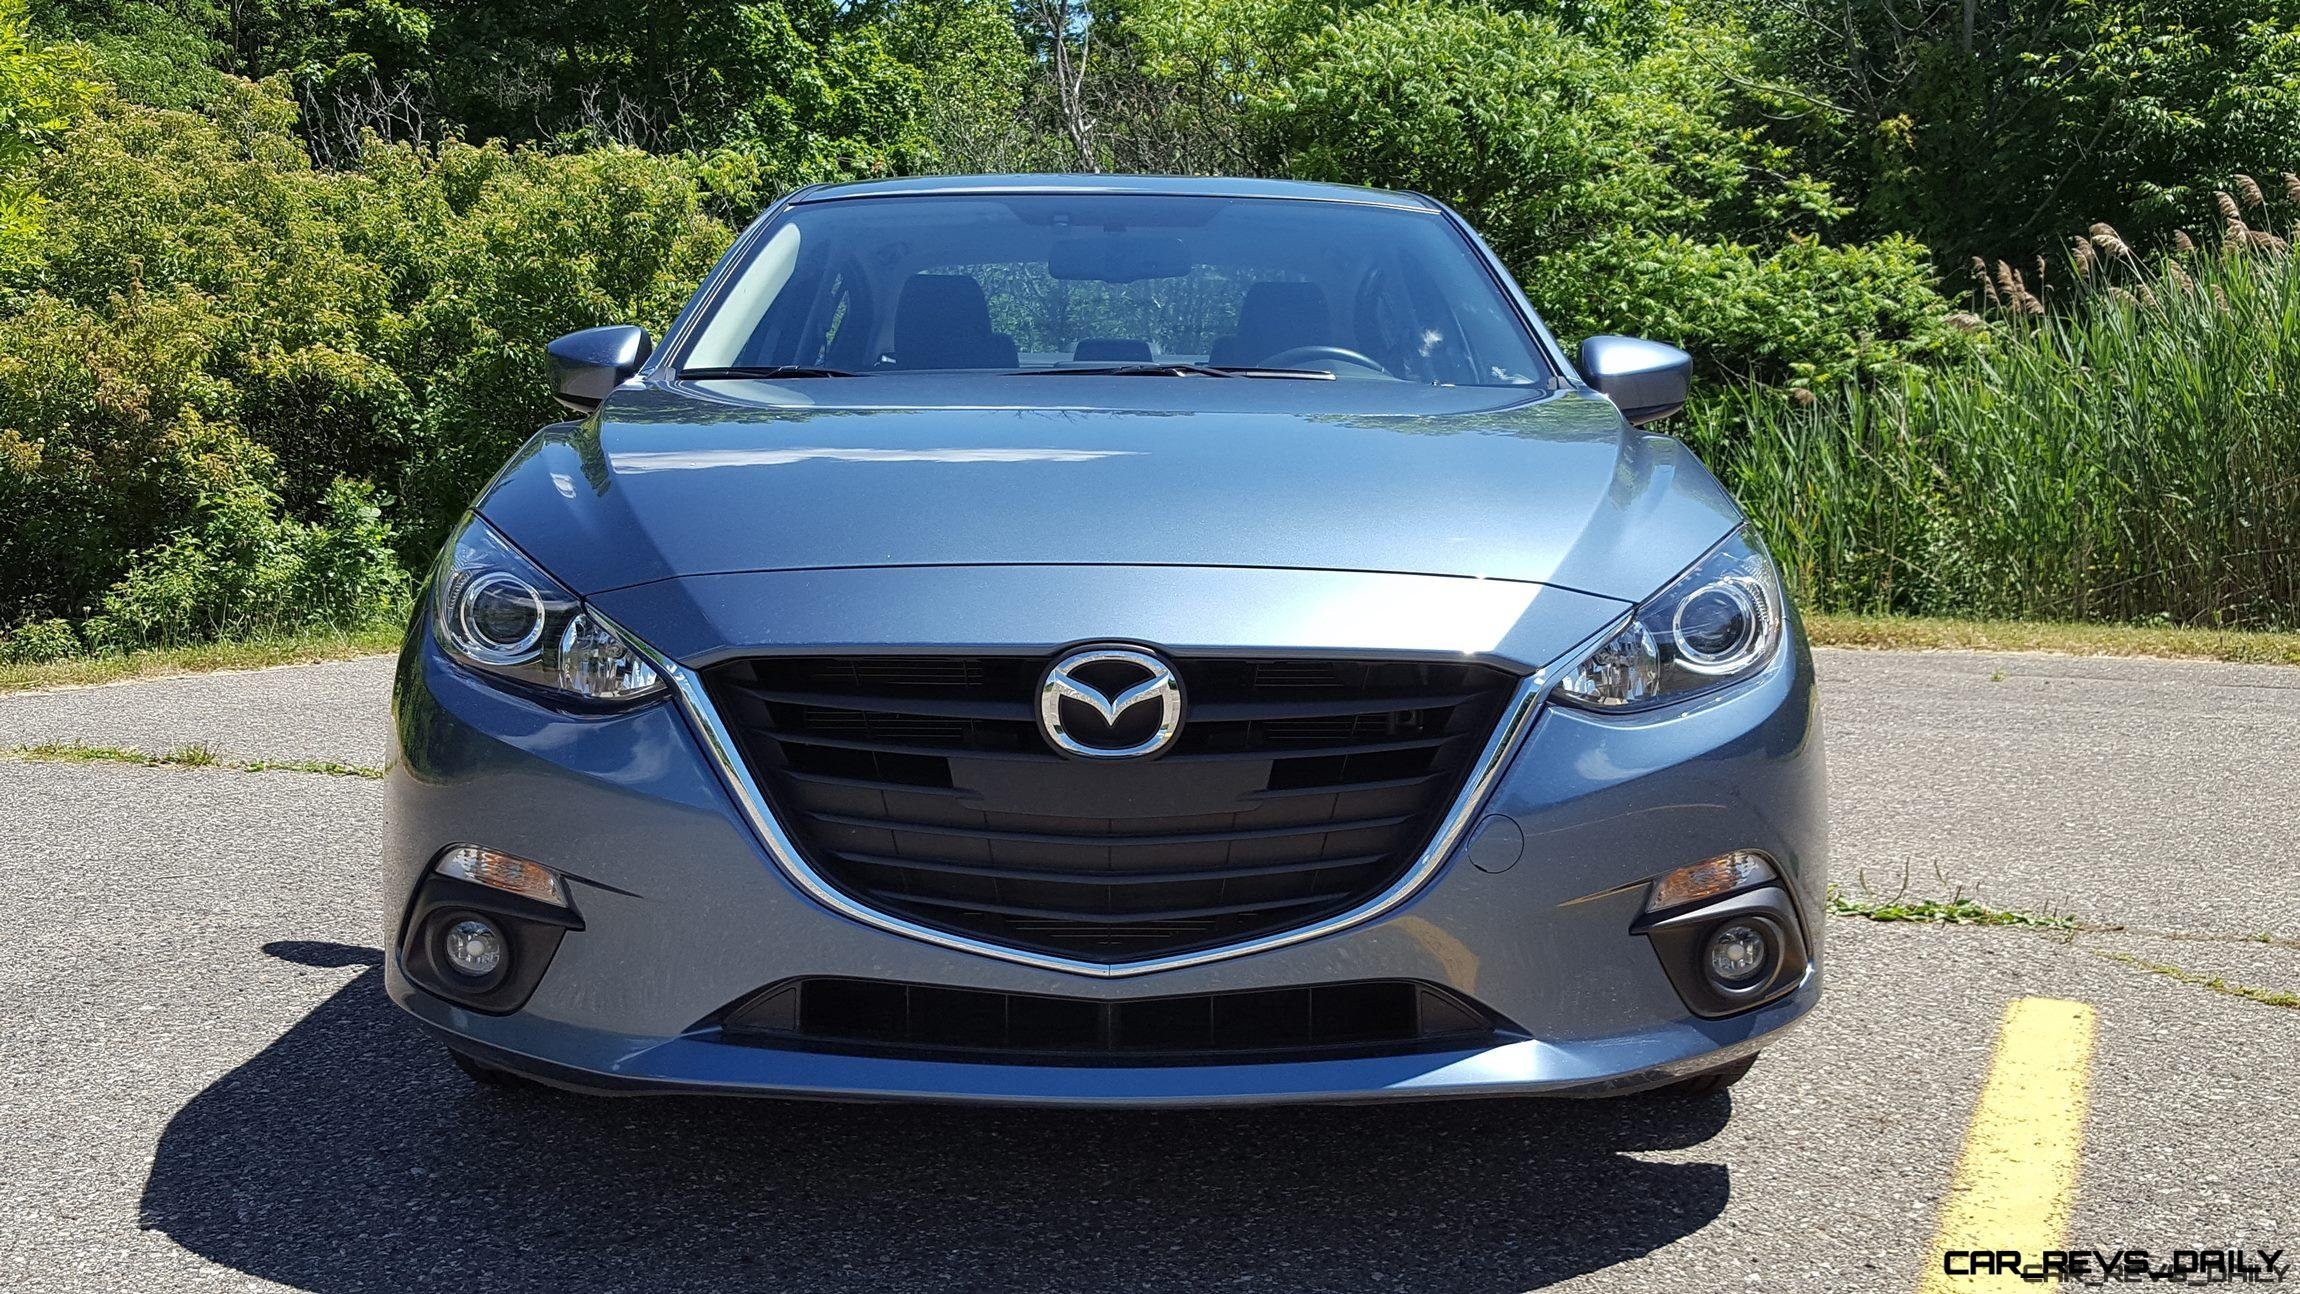 Road Test Review - 2016 Mazda 3 i Grand Touring Sedan (6MT) - By Carl Malek 2